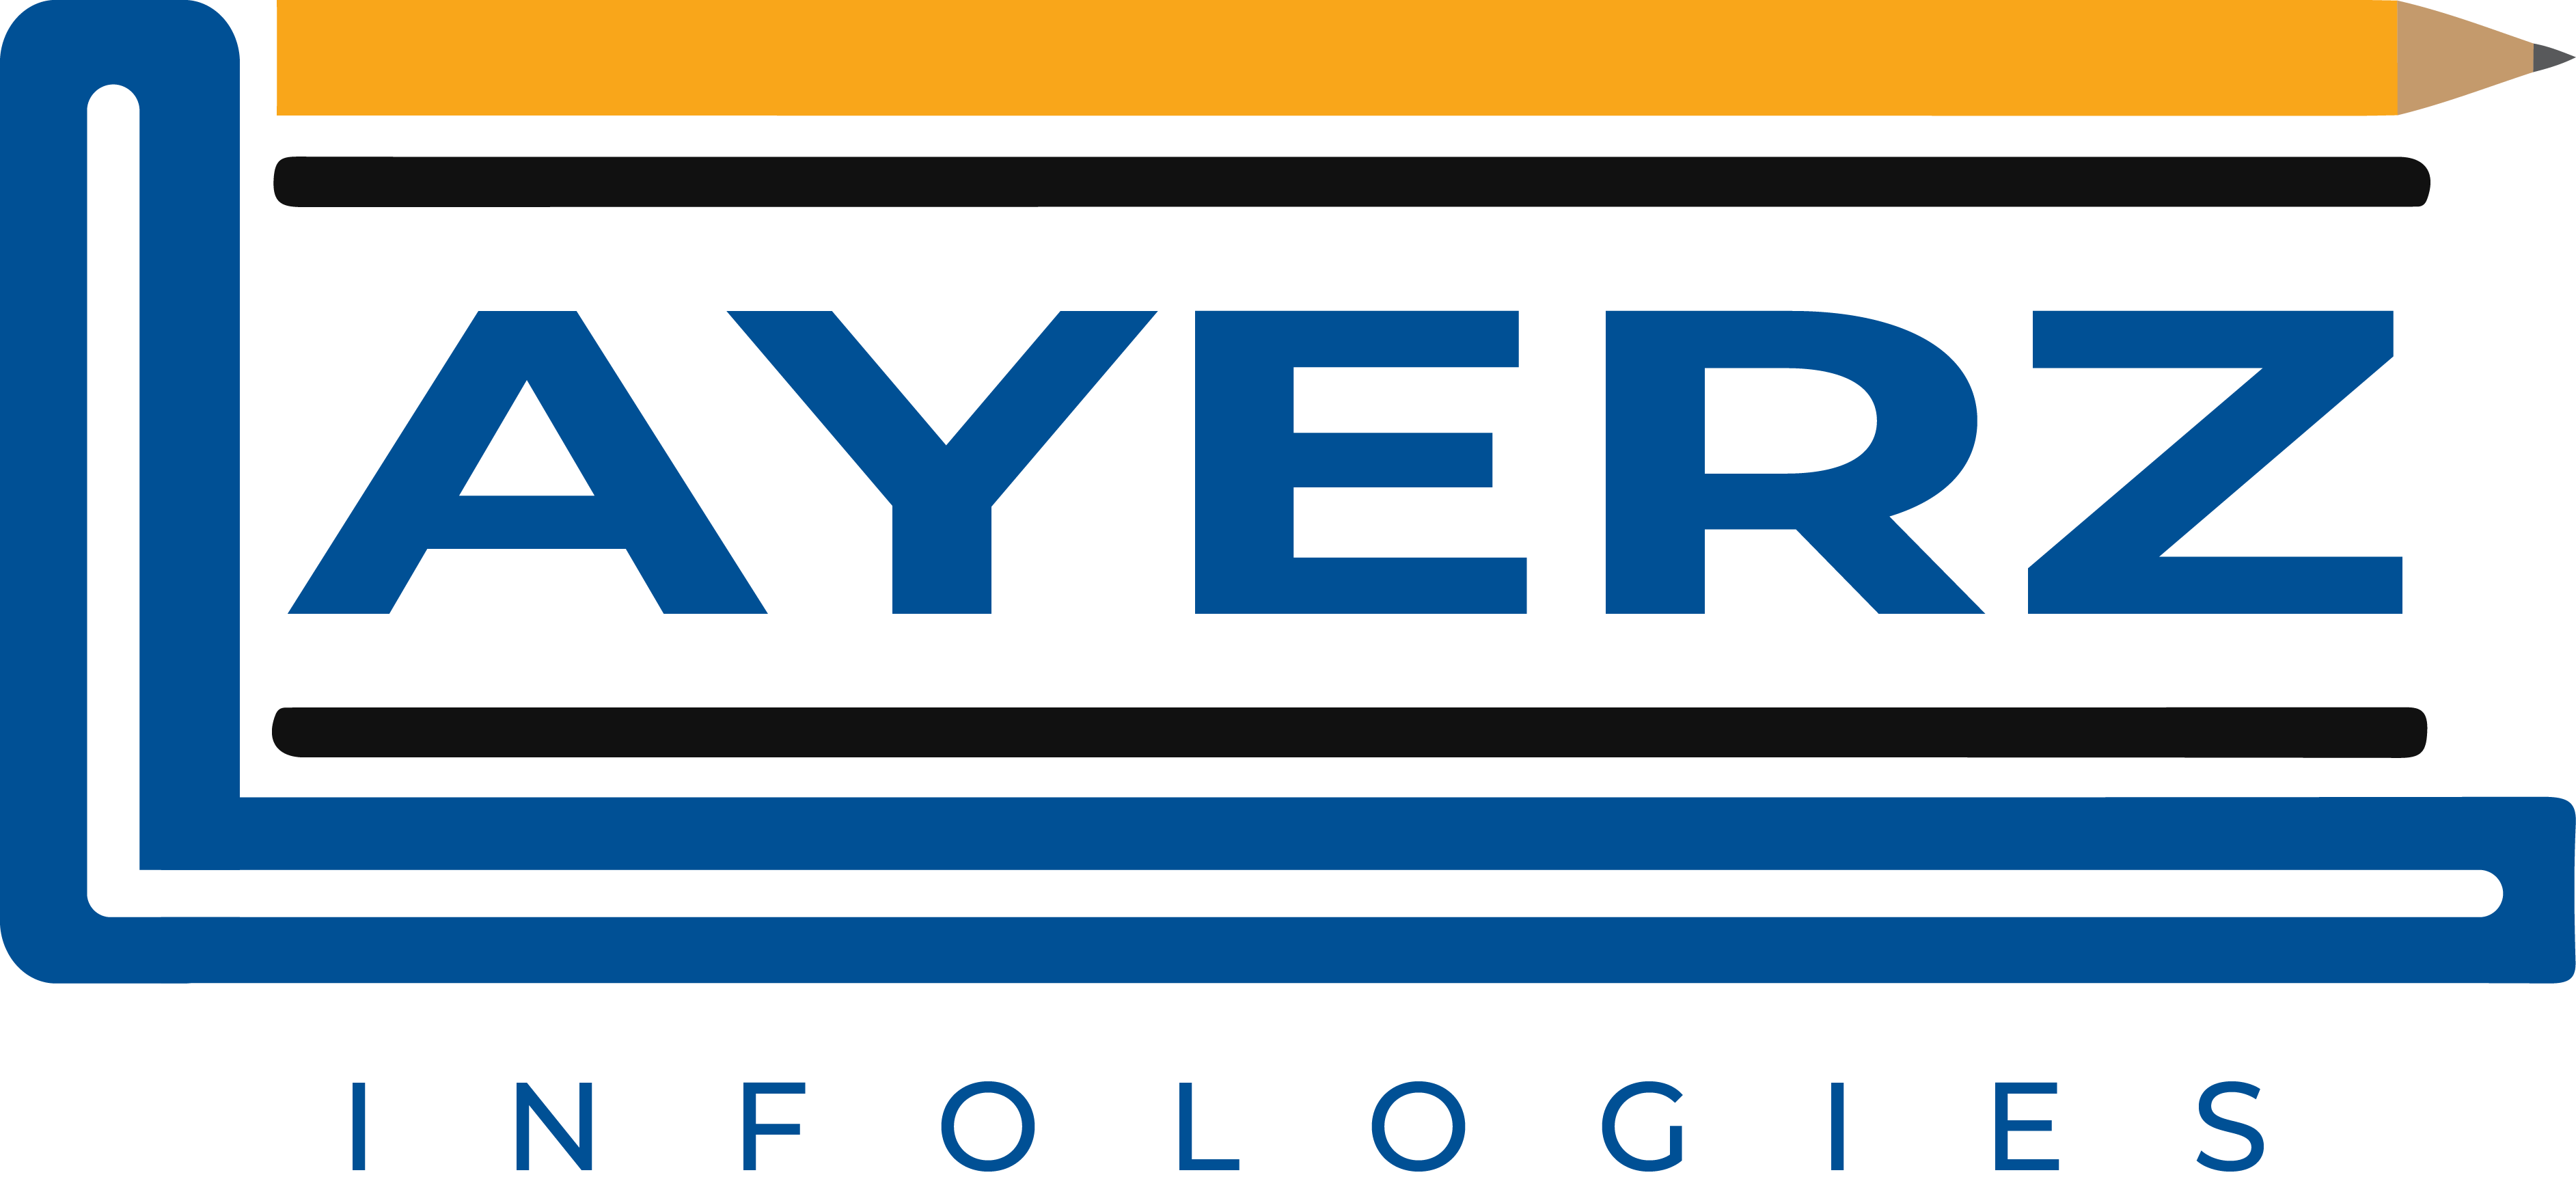 Integrated Training Company in Coimbatore - Layerz Infologies